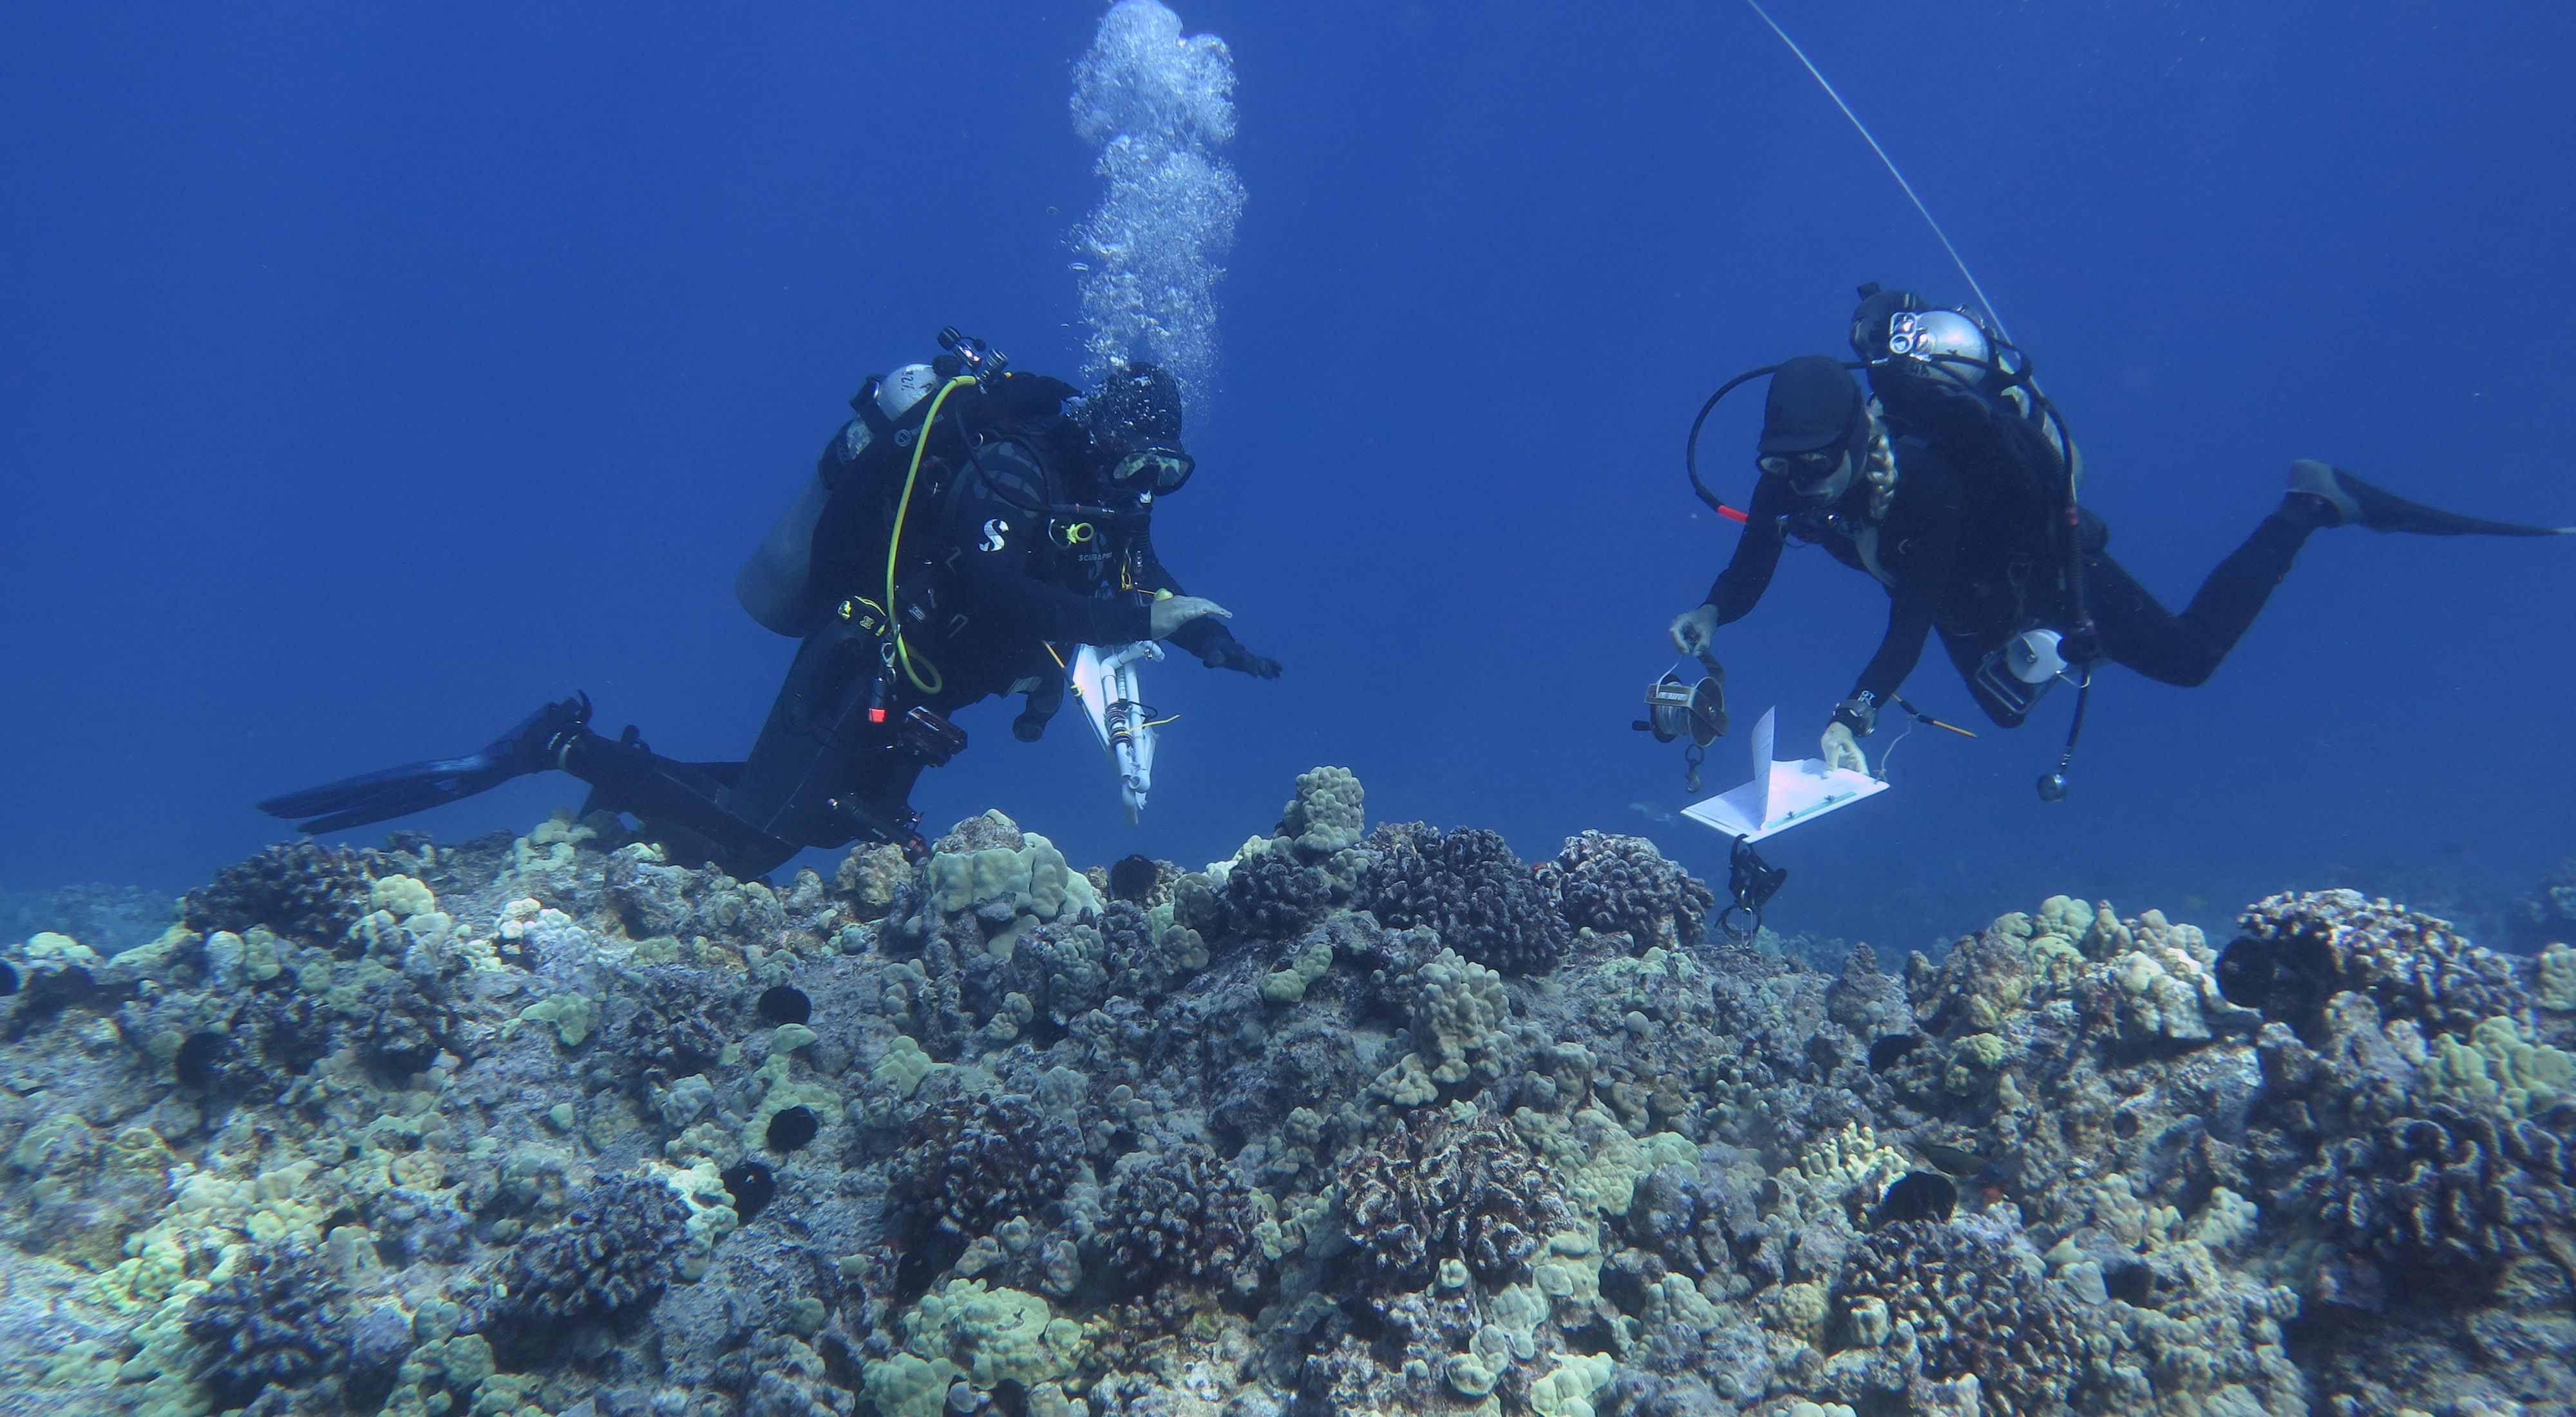 Two SCUBA divers with clipboards studying a Hawaiian coral reef.